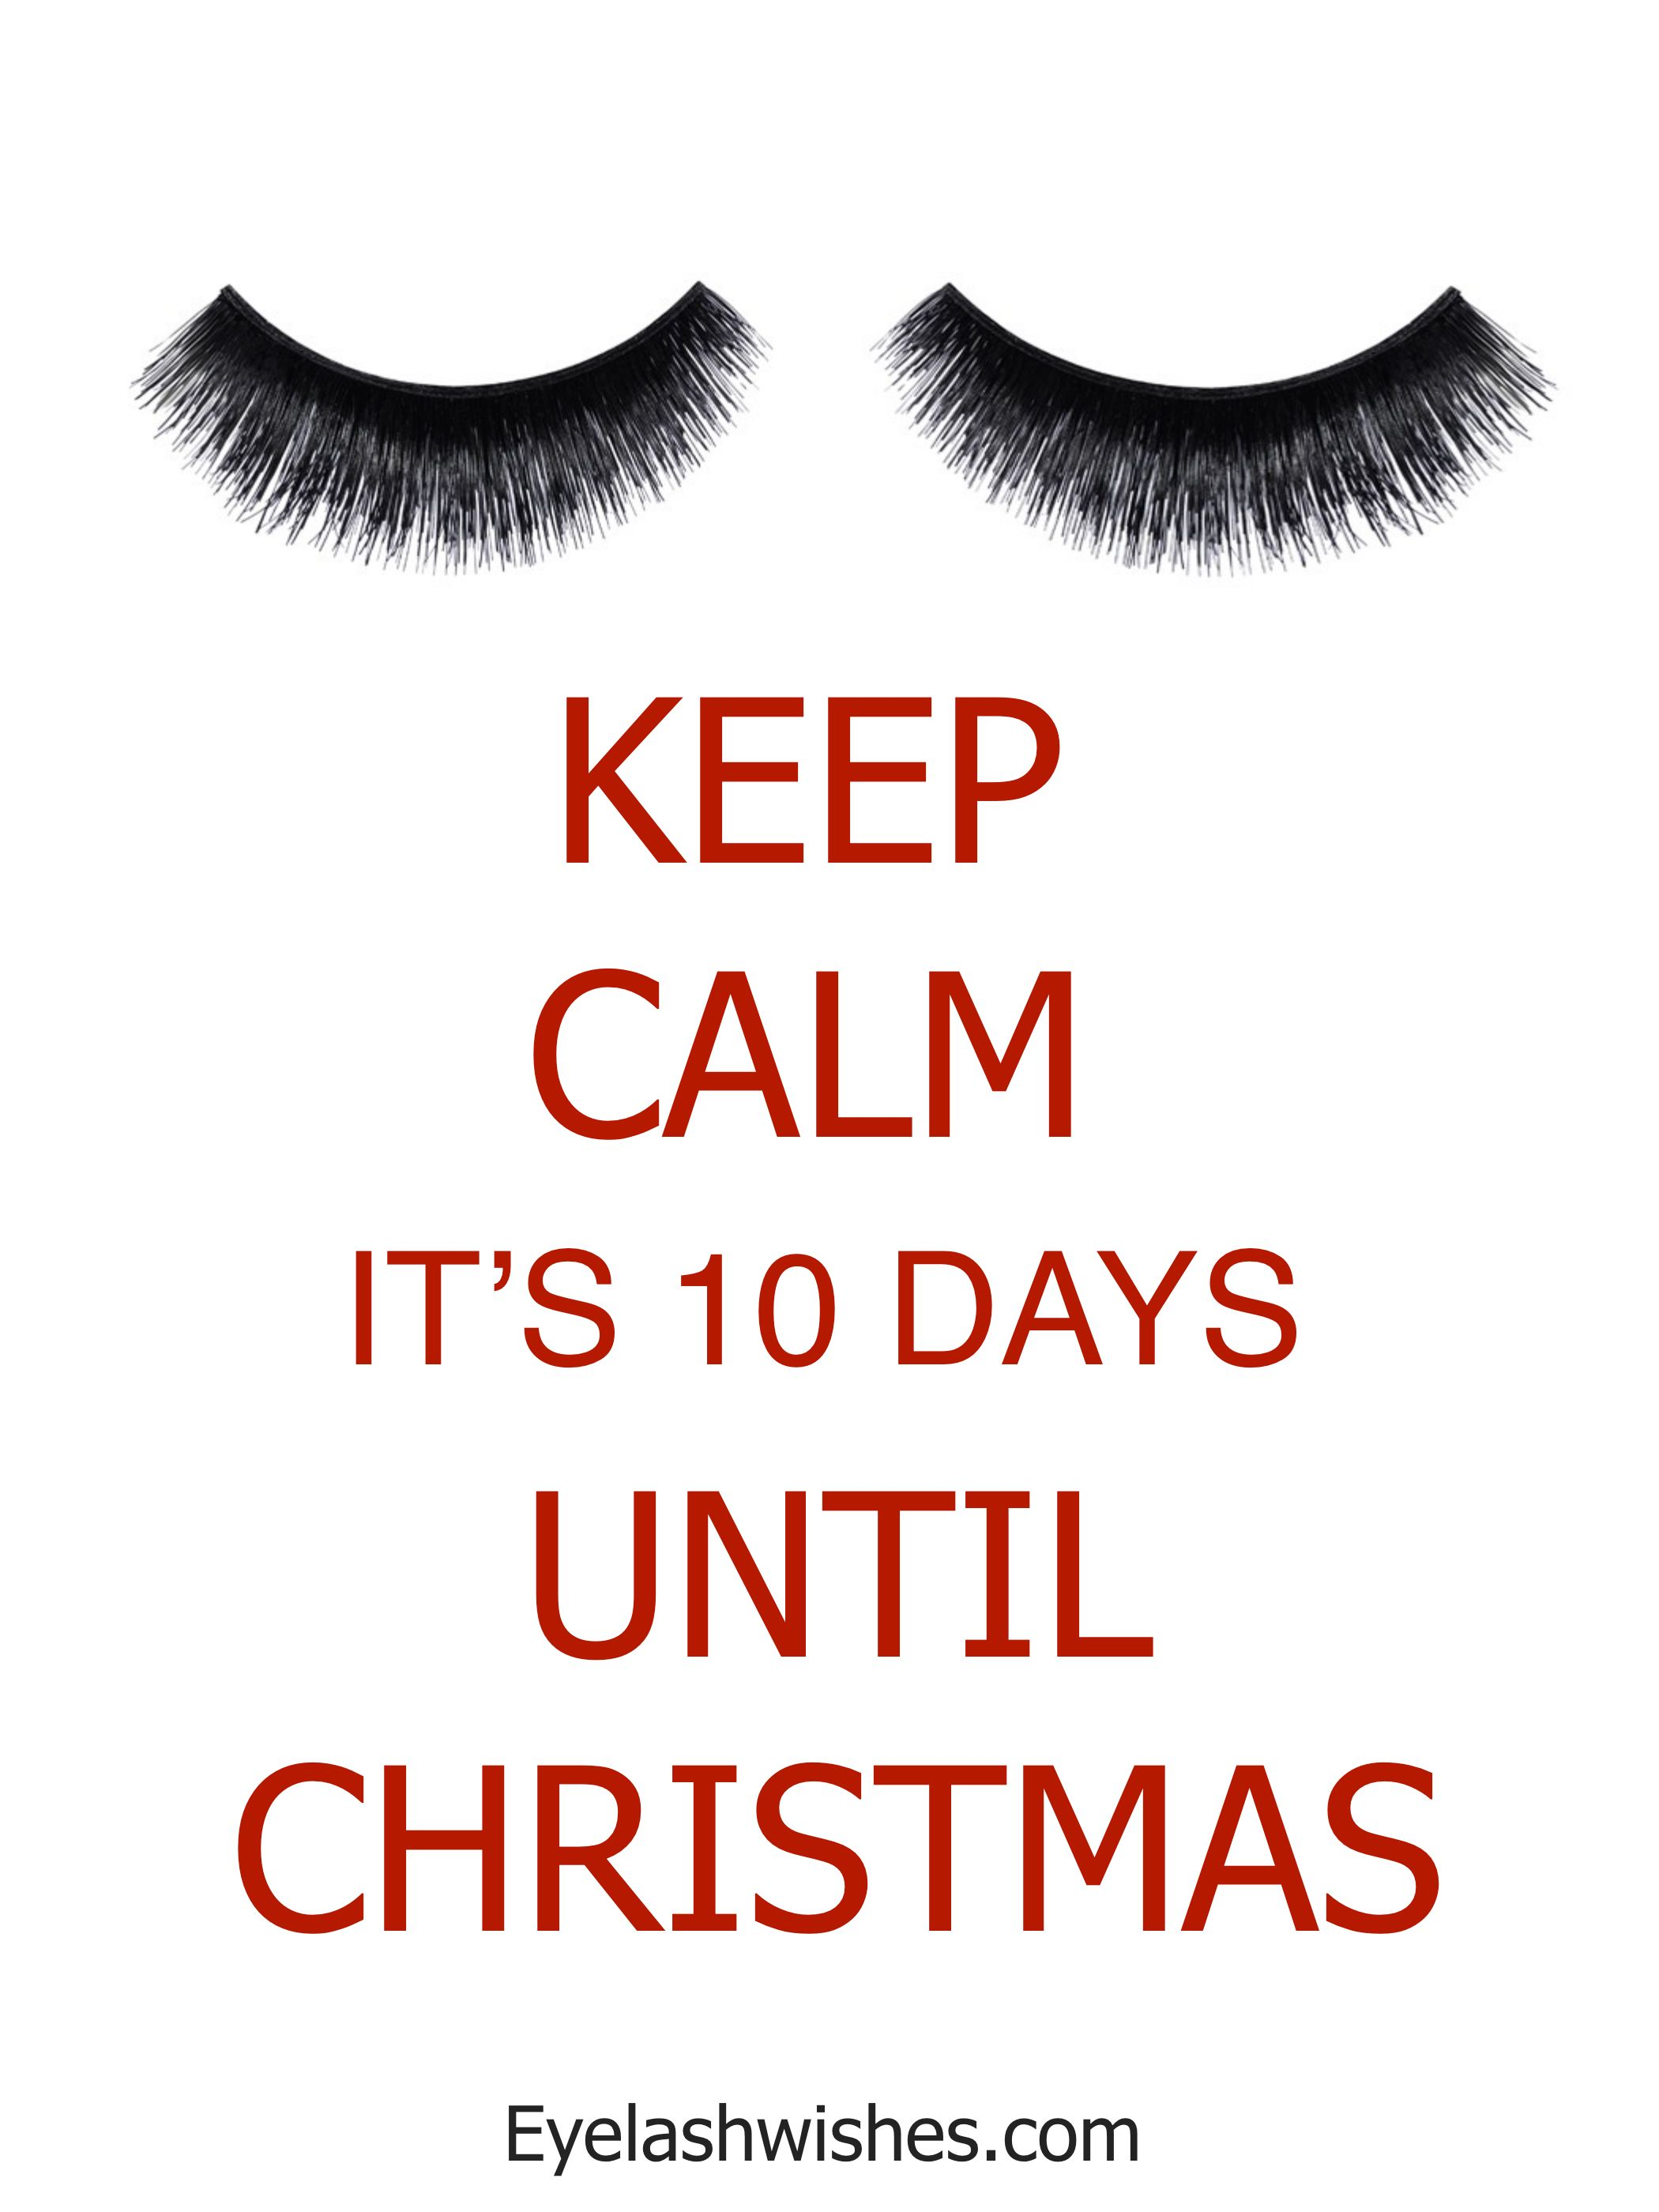 keep calm its 10 days until christmas lash christmas xmas wwweyelashwishescom wwweyelashwishescouk